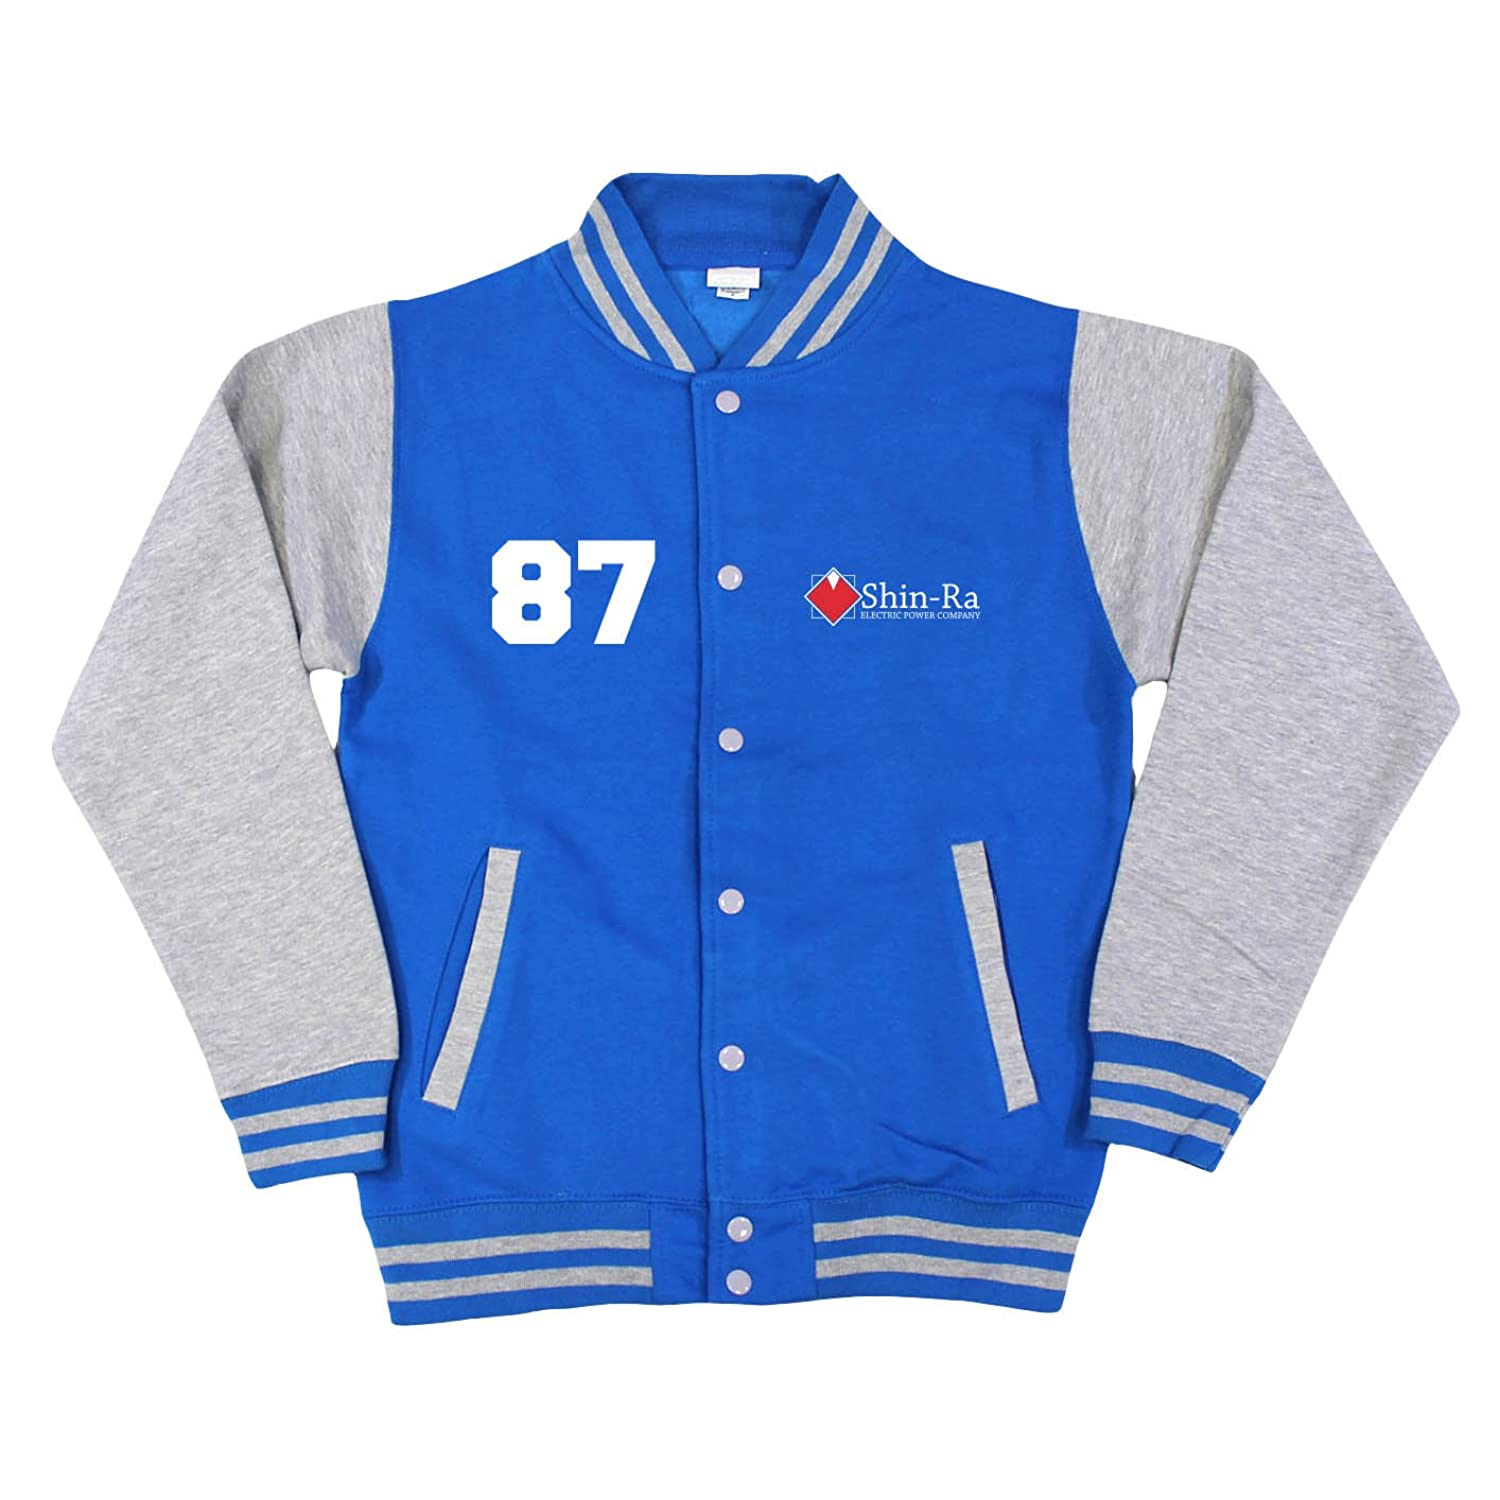 FINAL FANTASY: SHIN RA WINGS Unisex Varsity Jacket